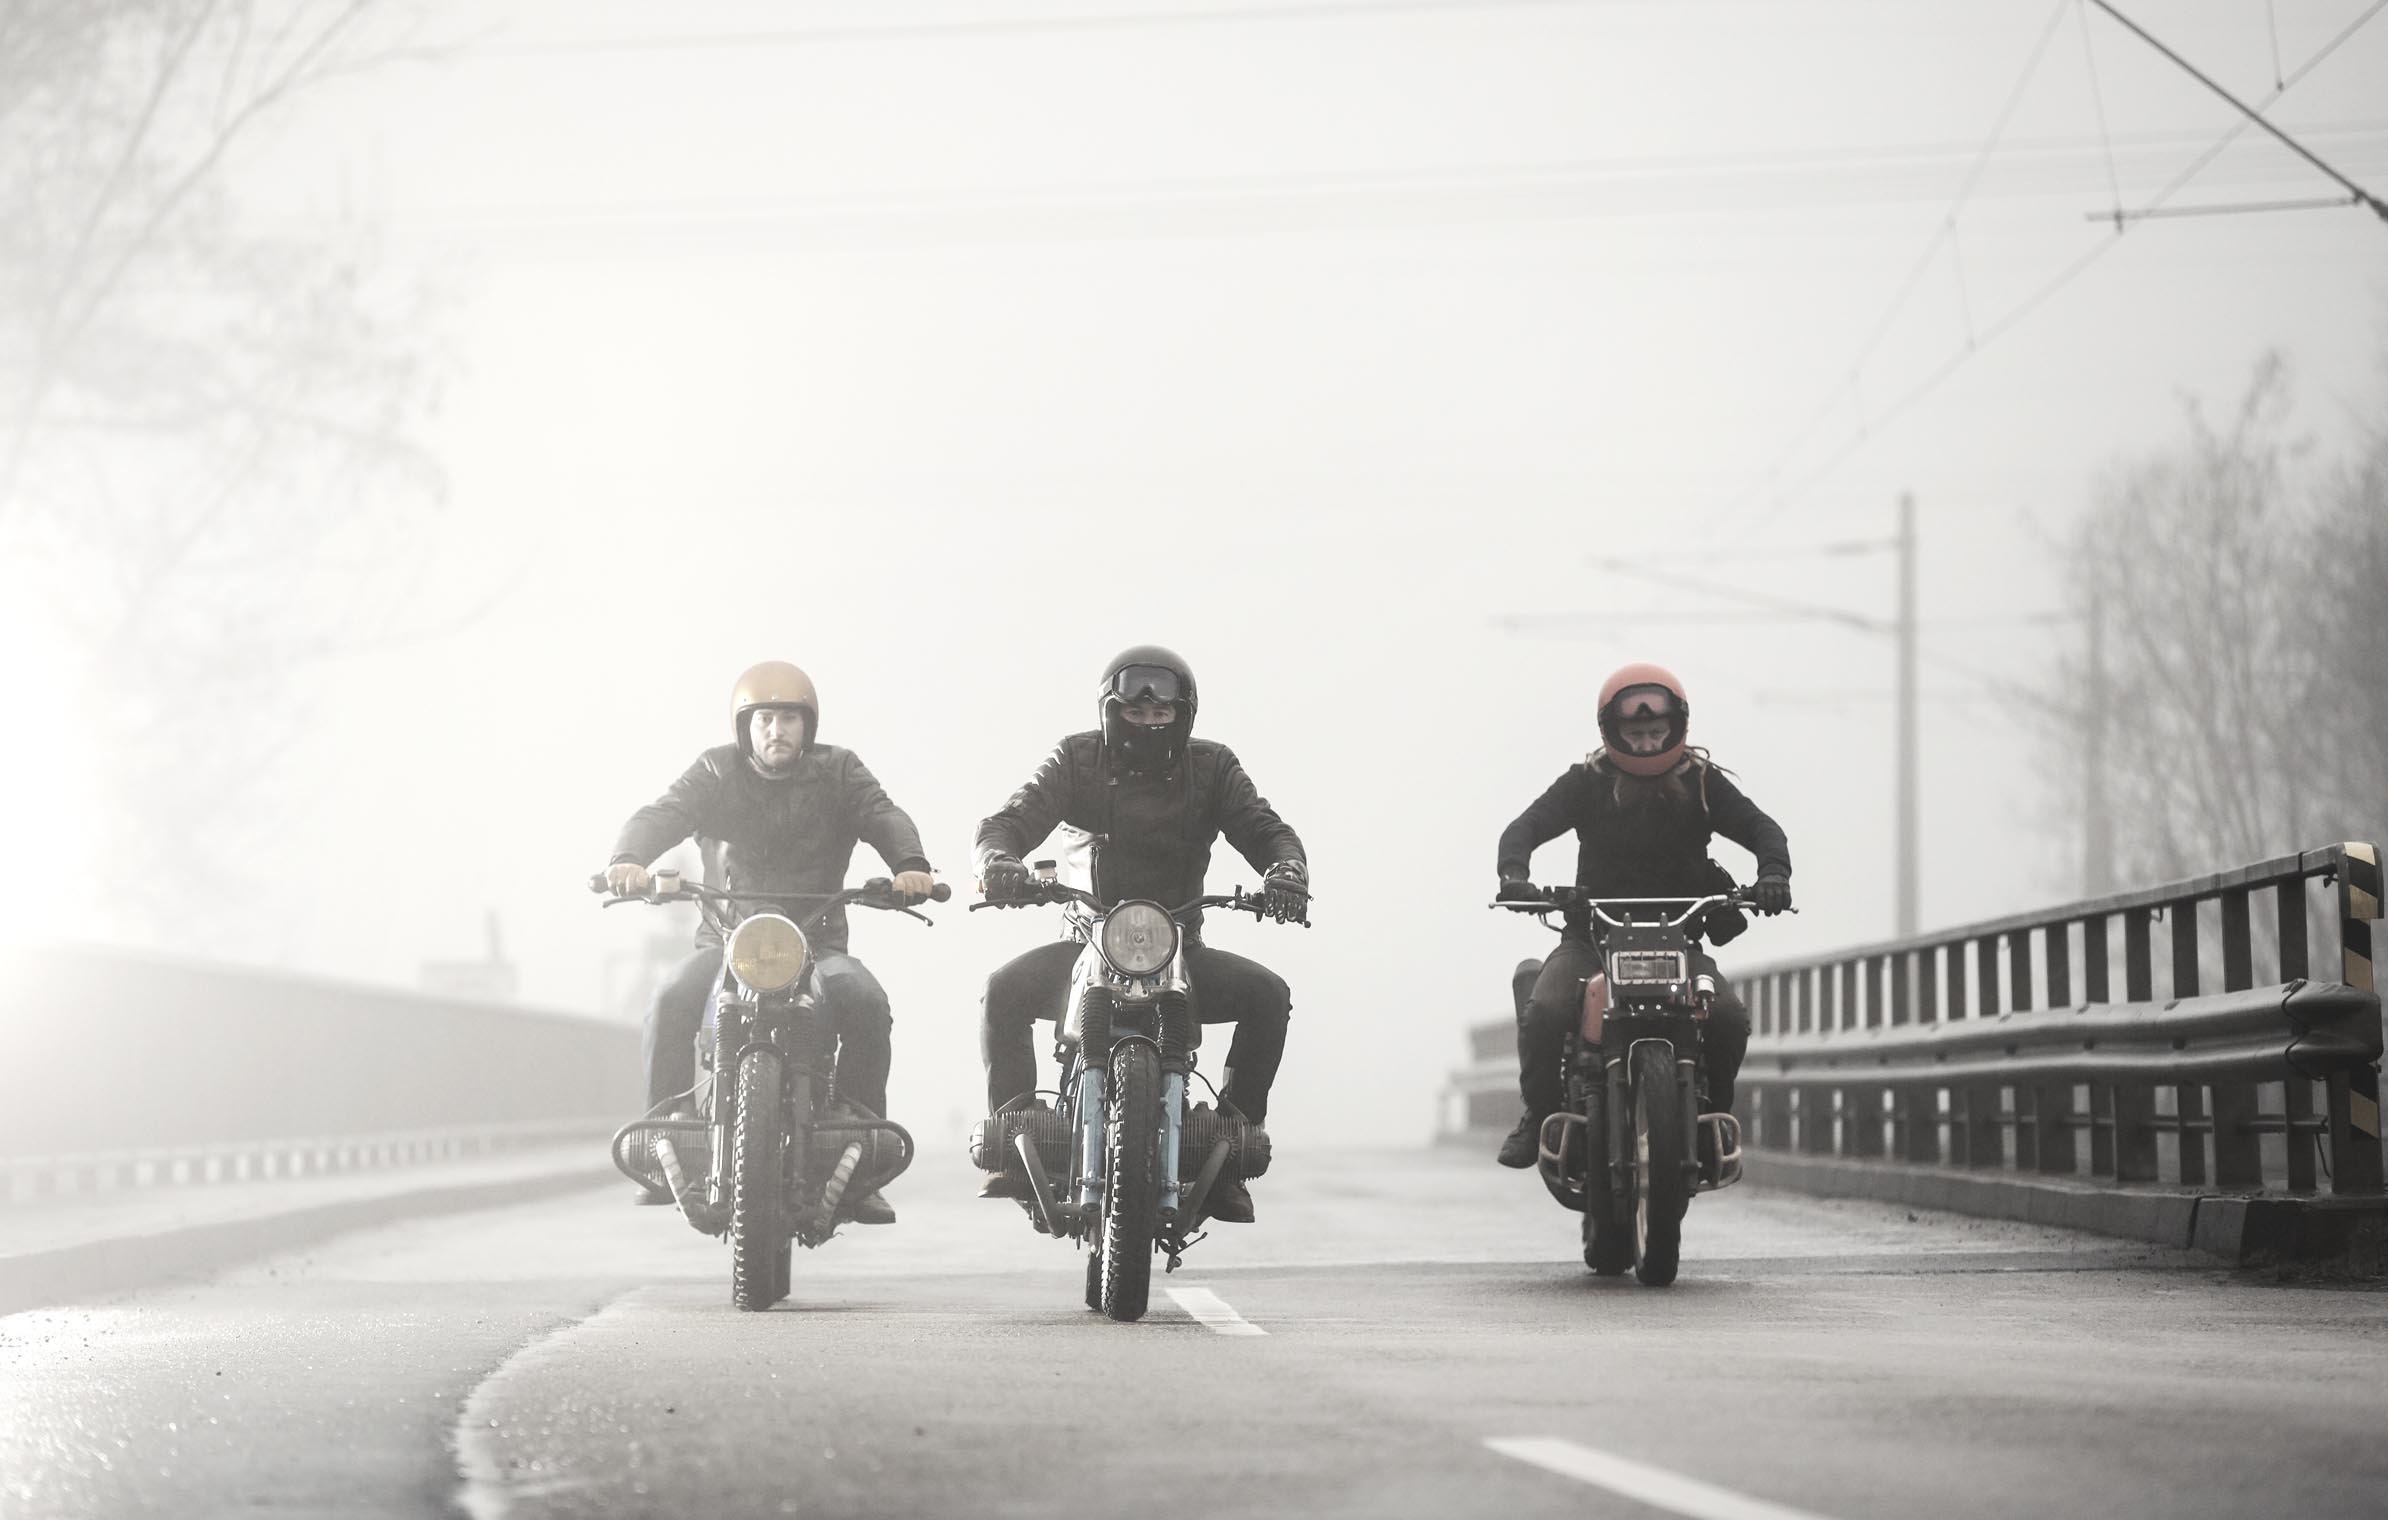 titan_roadtrip_motorcycles_riding_street_three_bmw_kawa_foggy_morning